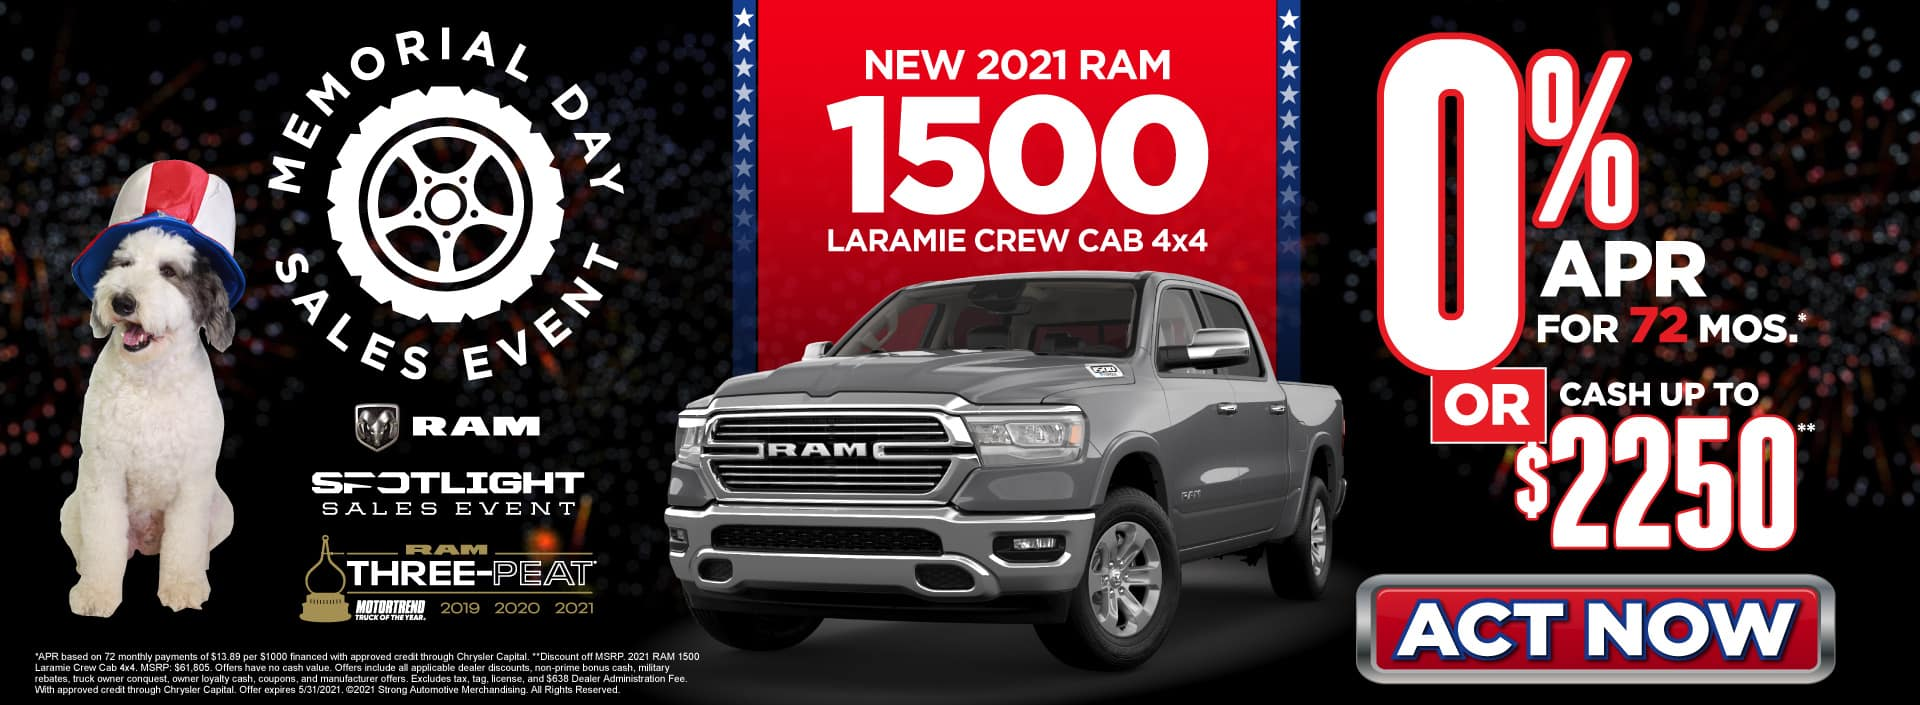 New 2021 Ram 1500 - 0% APR for 72 months - Act Now